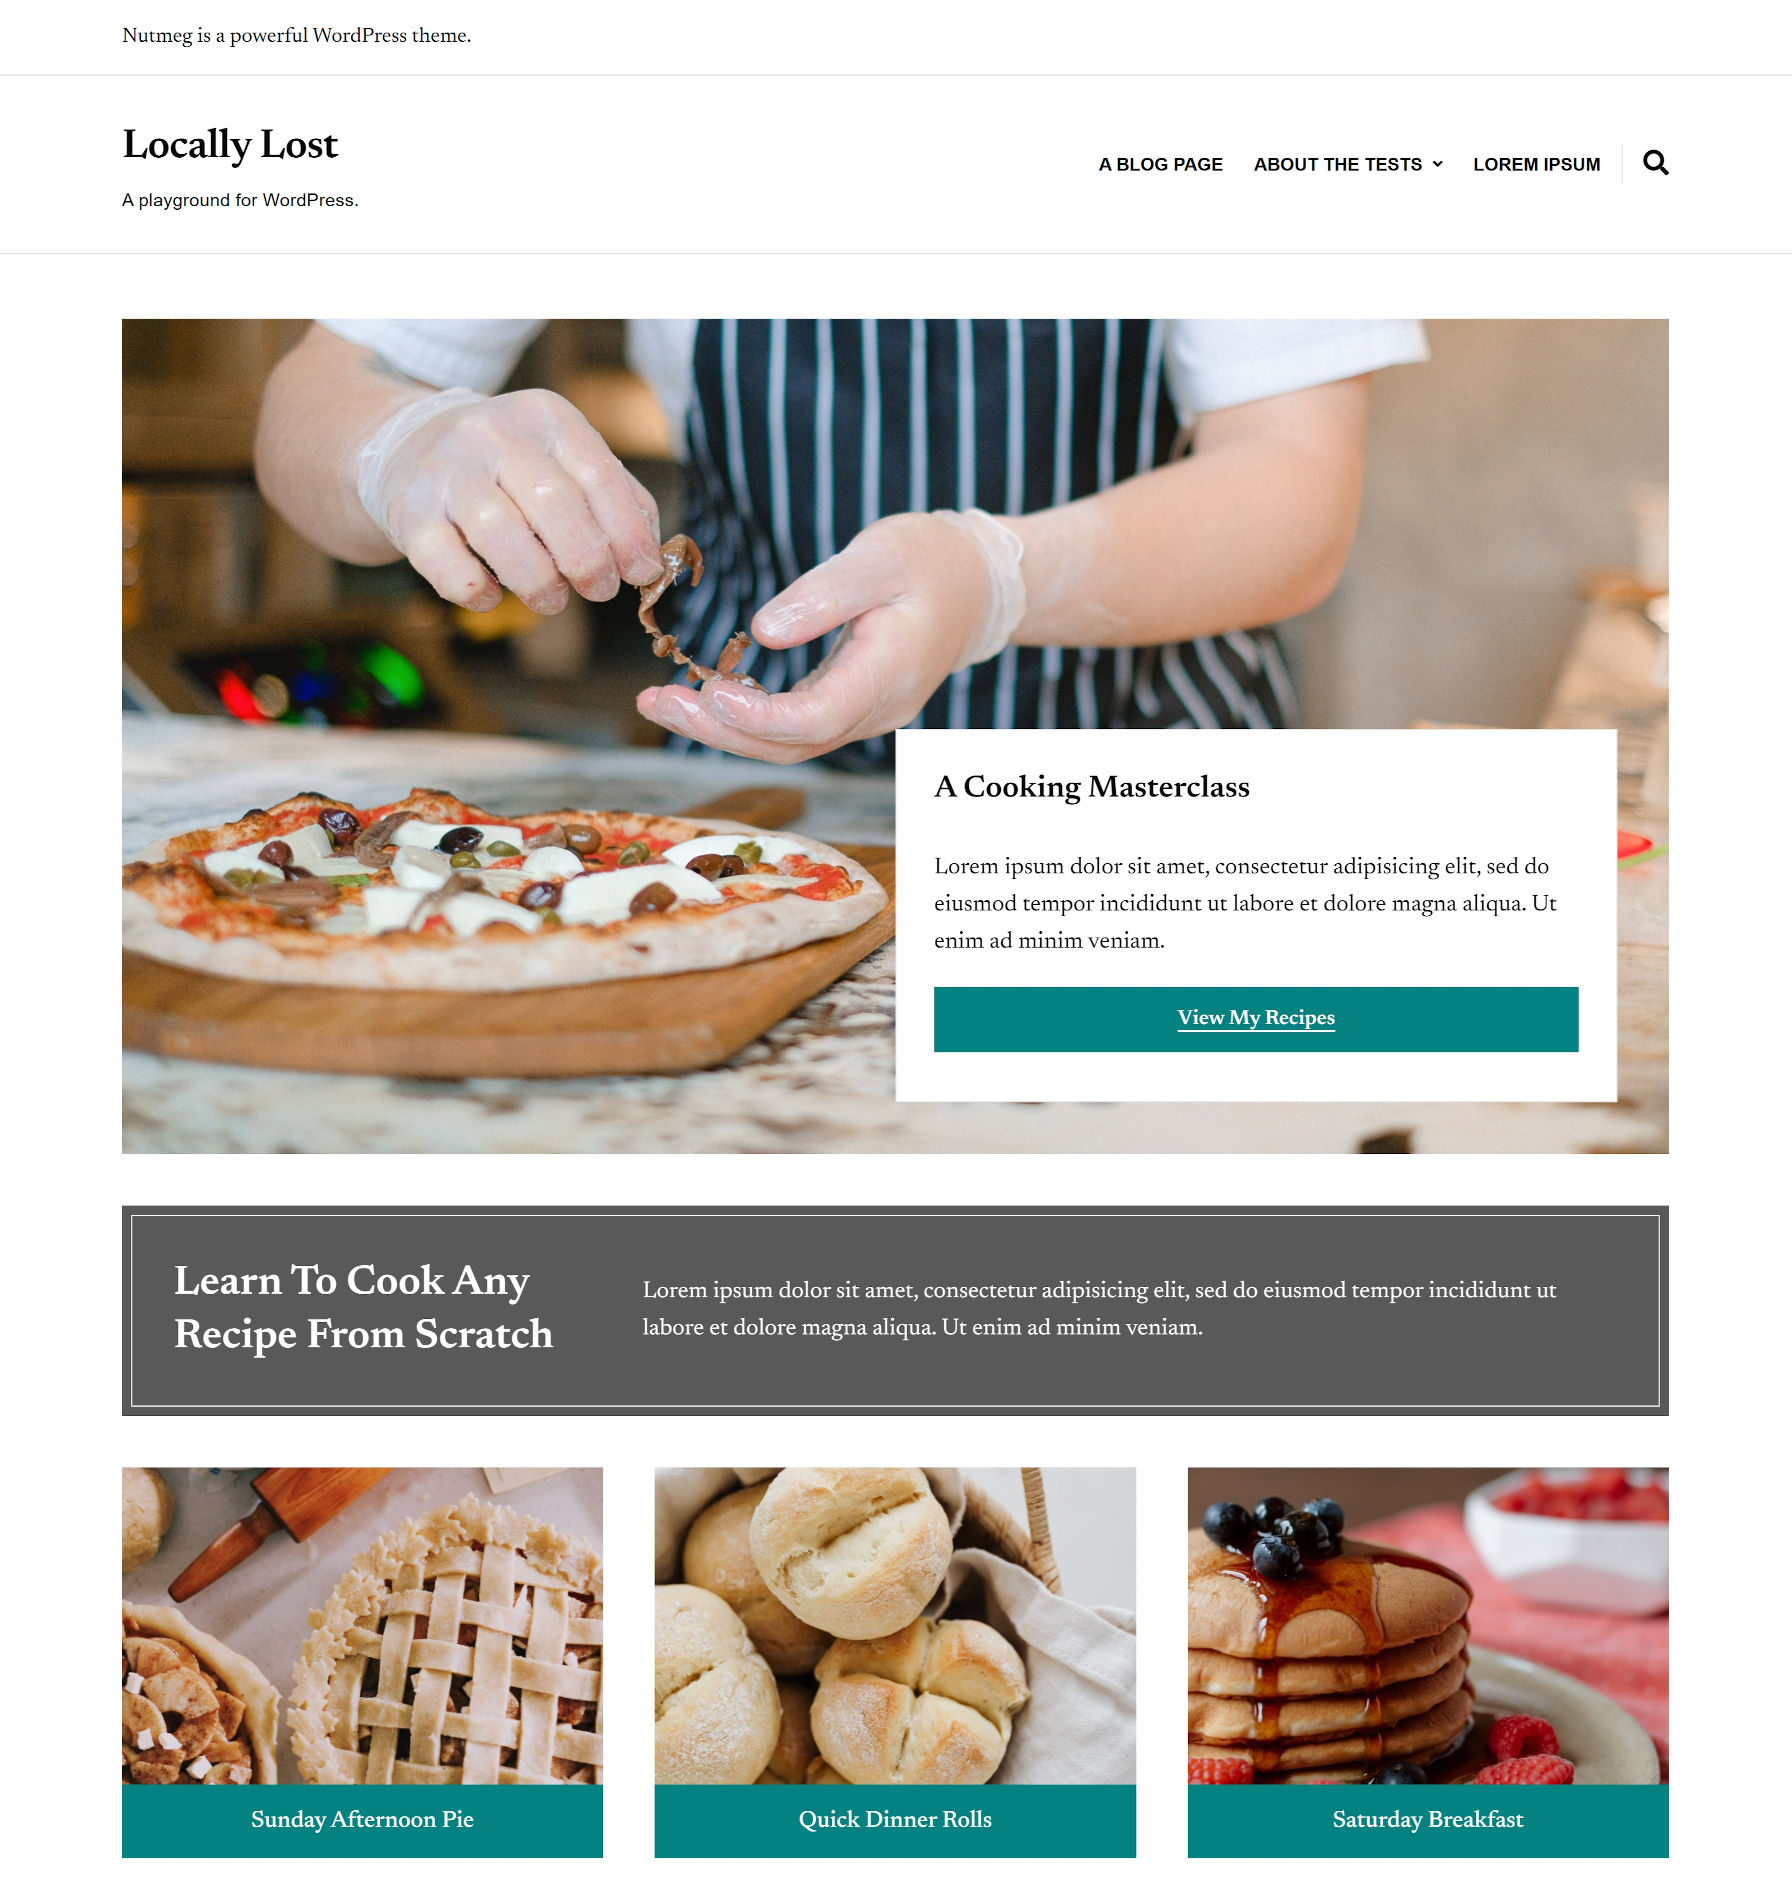 Screenshot of a recipe blog homepage built with Nutmeg's block patterns.